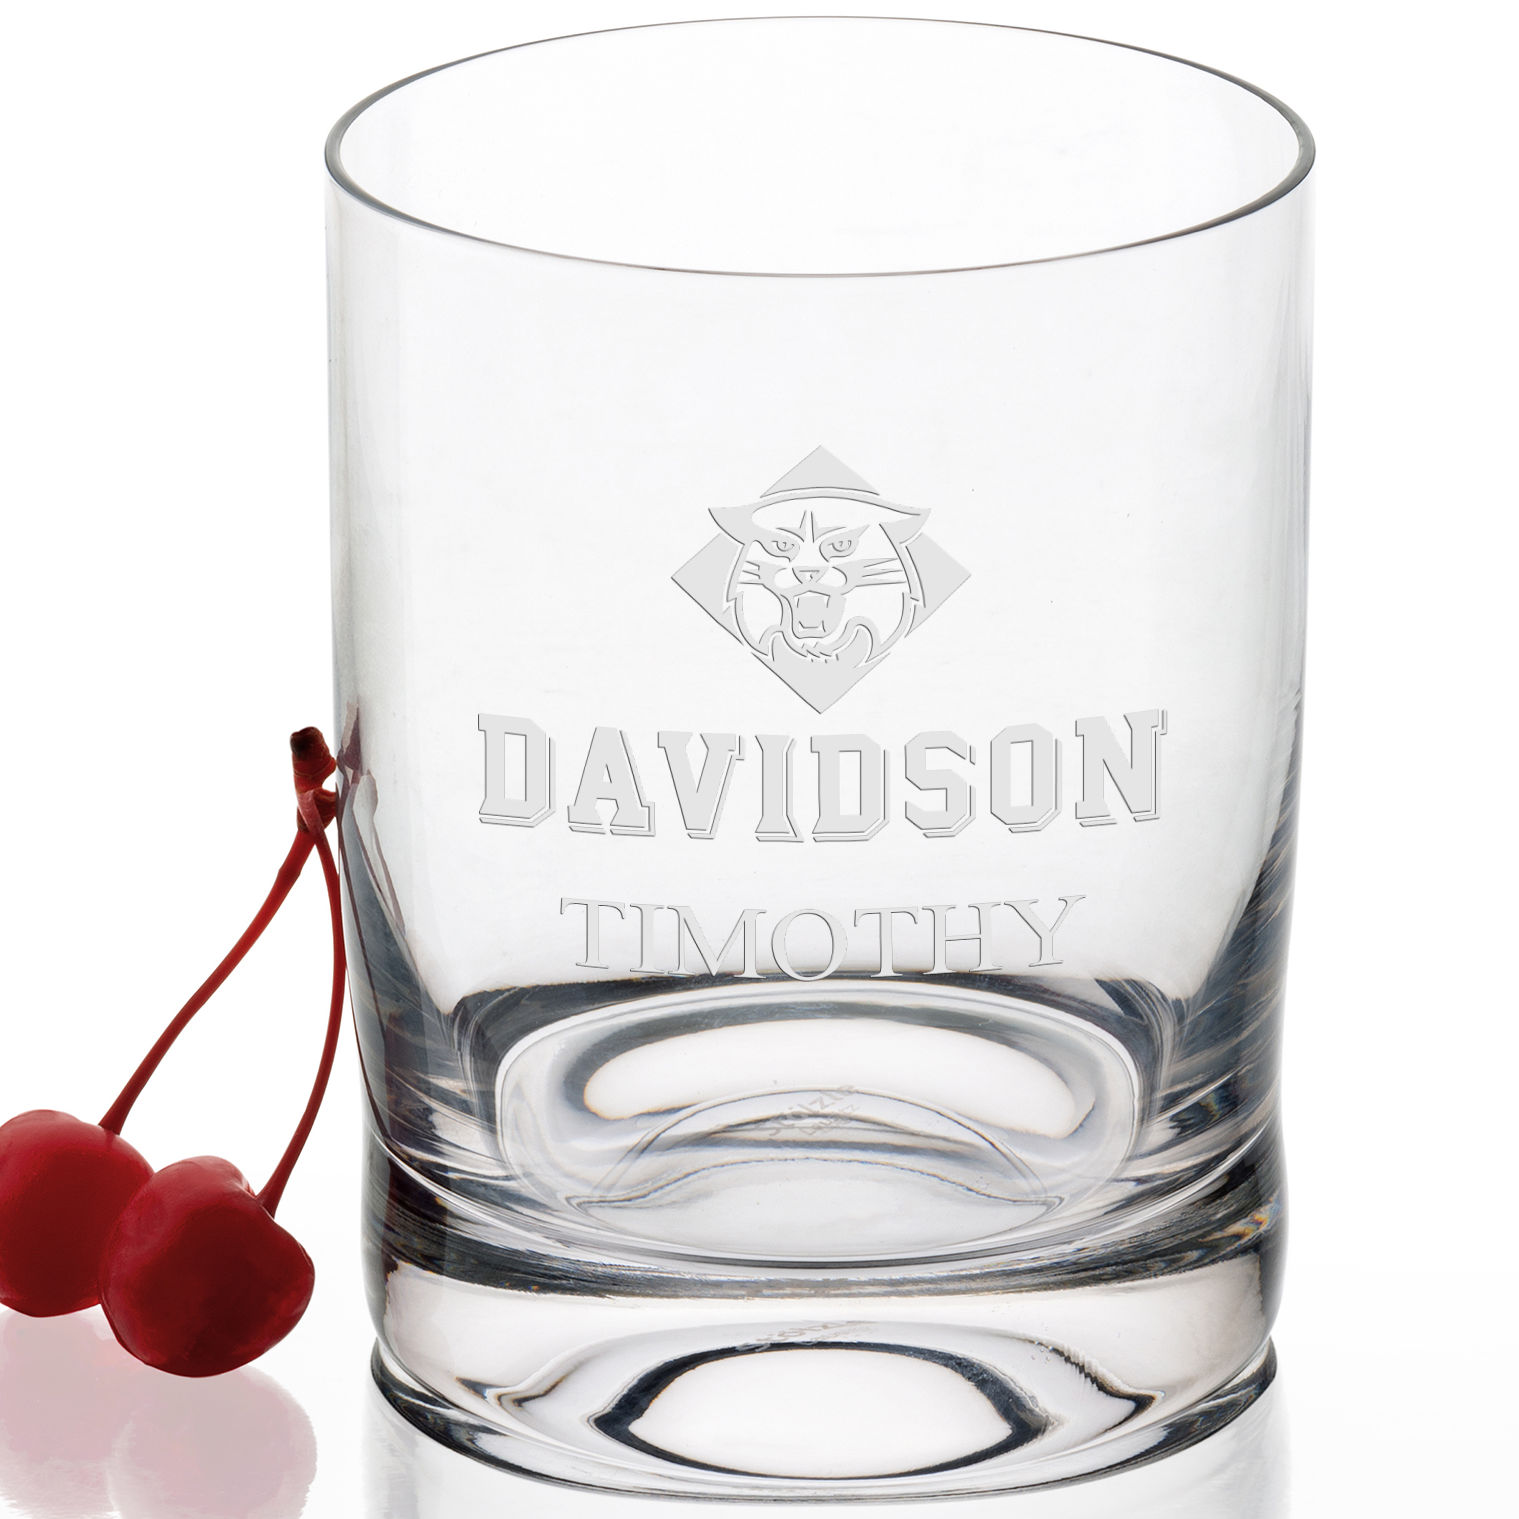 Davidson College Tumbler Glasses - Set of 4 - Image 2